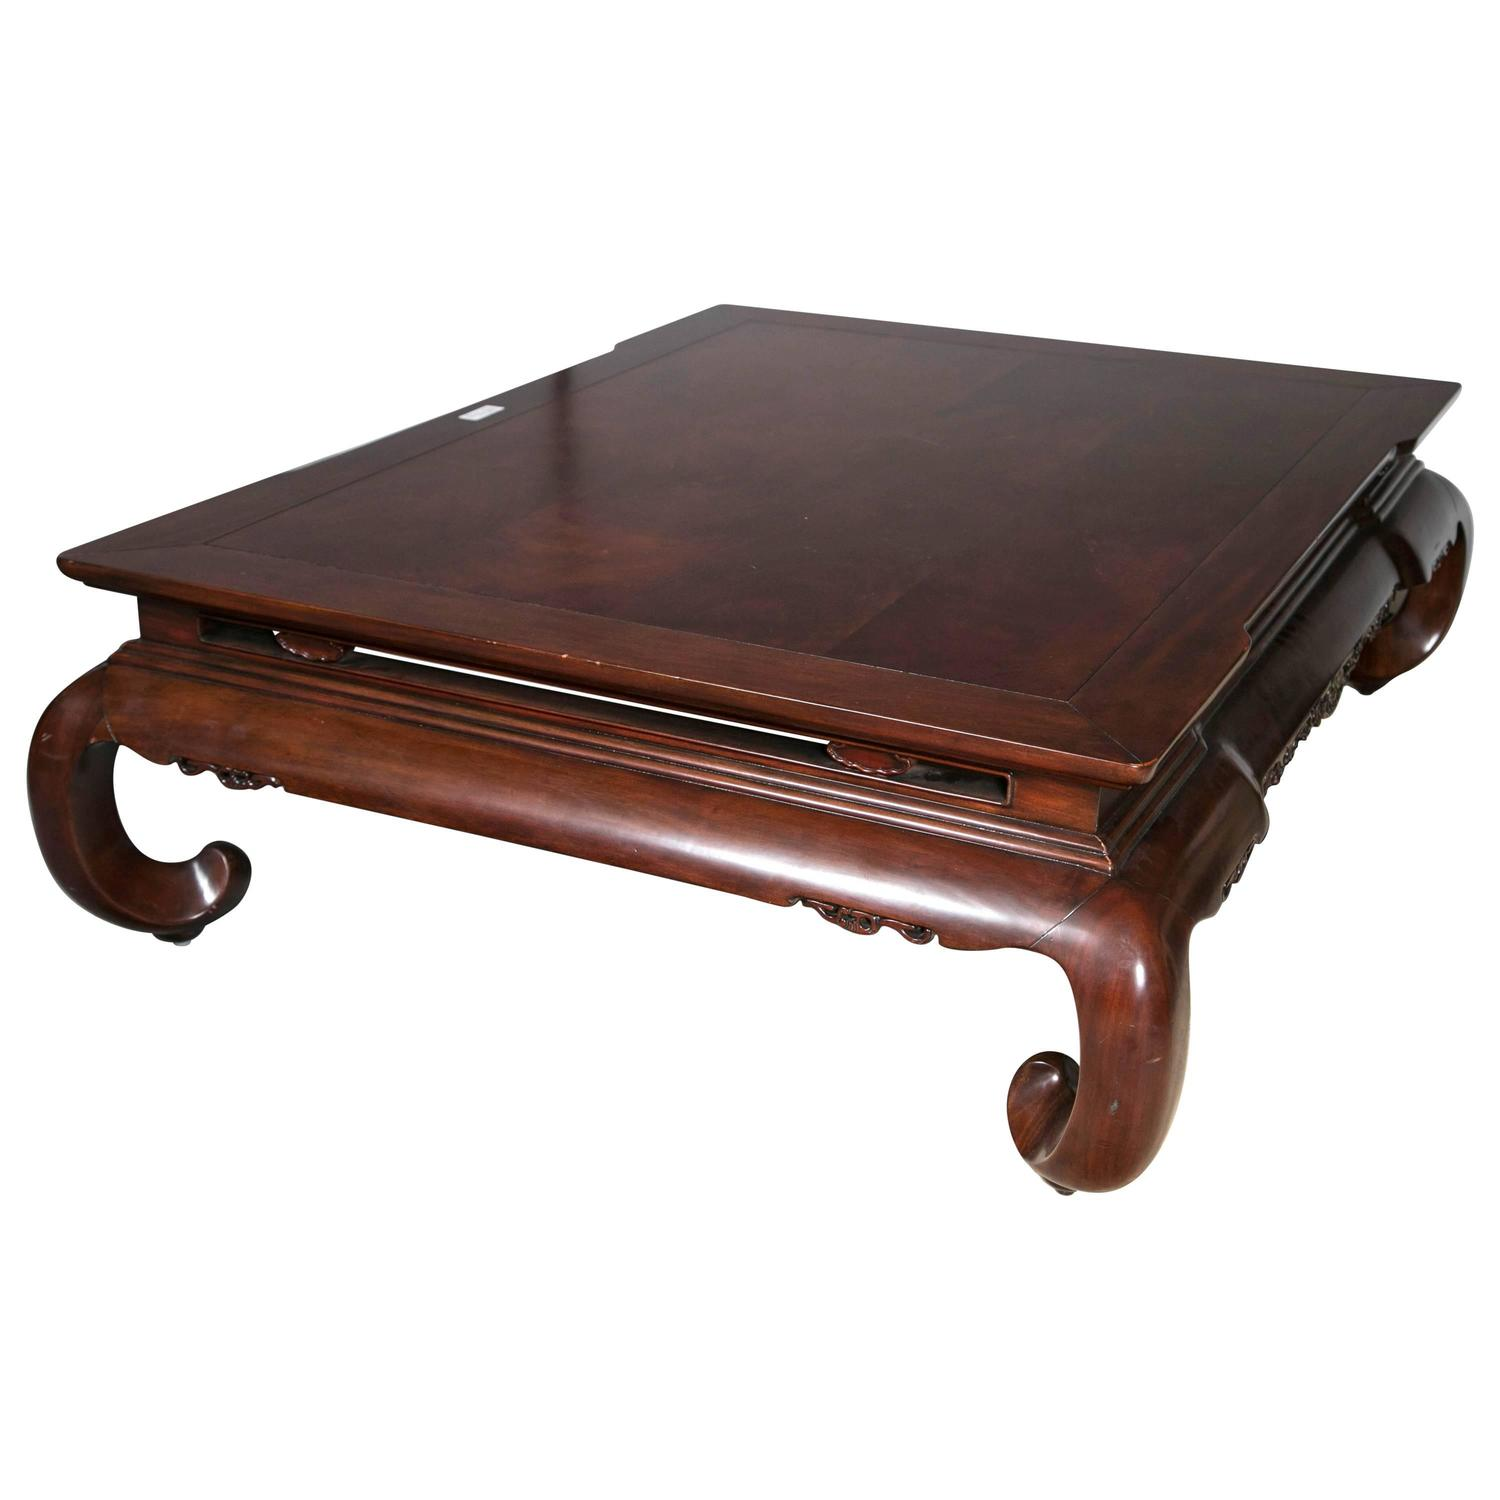 Ralph Lauren Beekman Coffee Table at 1stdibs